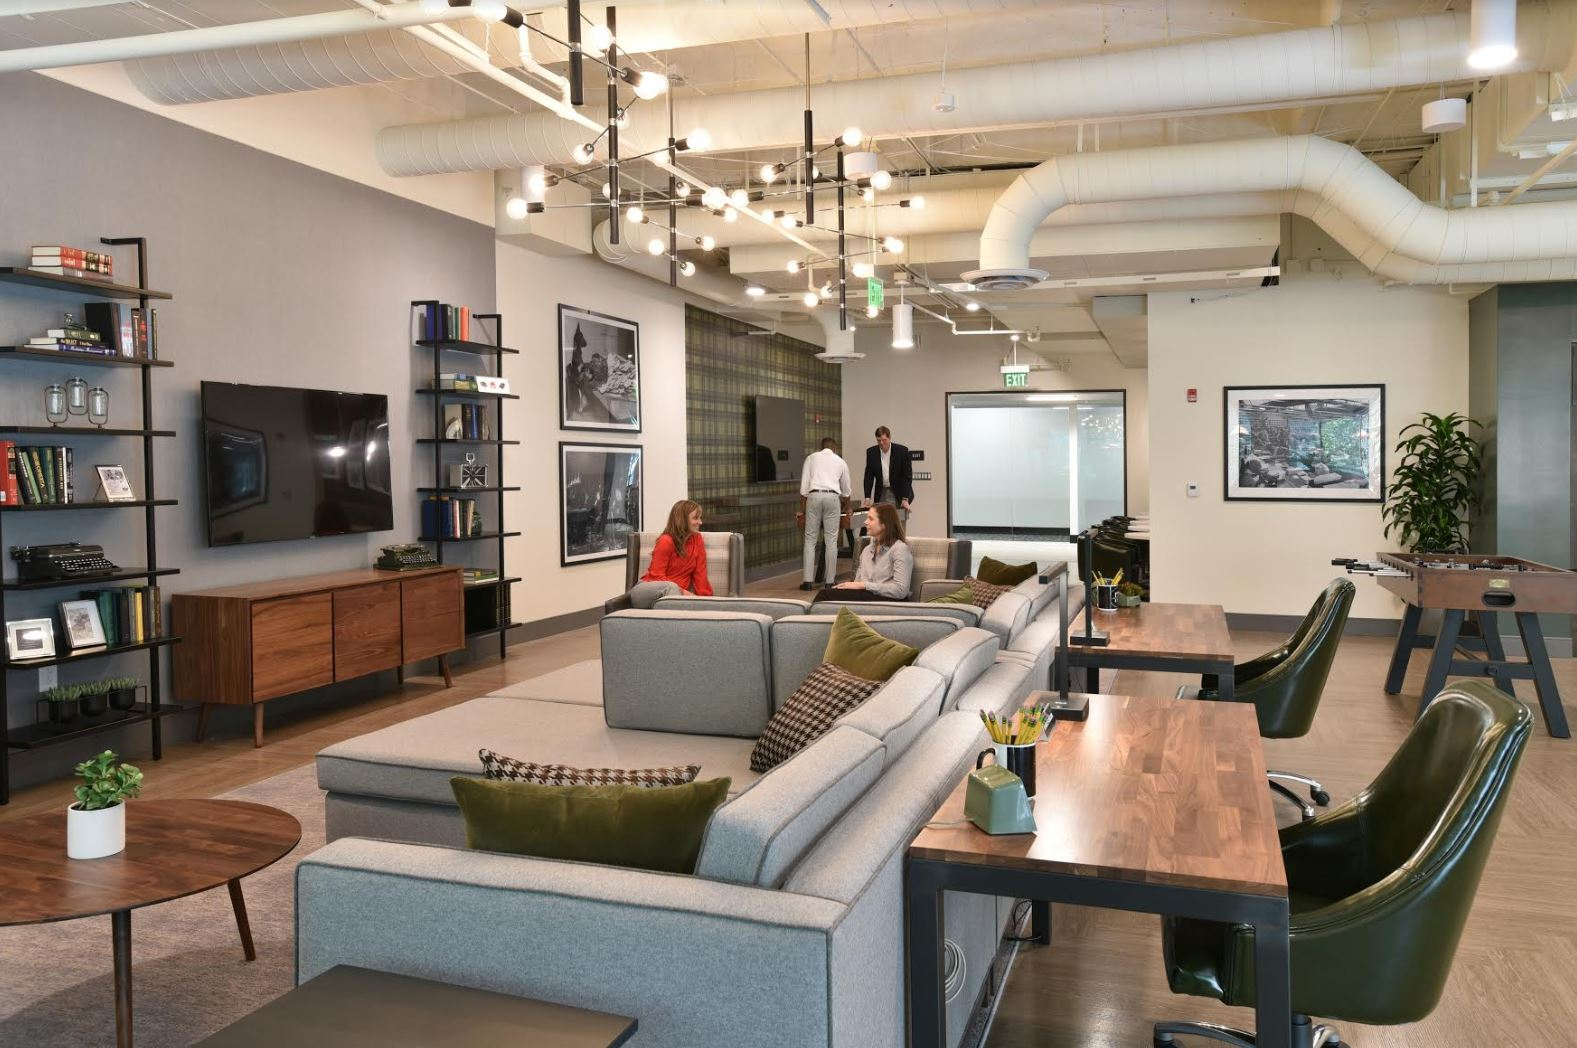 The Lounge at the Royal Club provides a multiple of activity areas for building tenants – Image courtesy of Bridge Commercial Real Estate